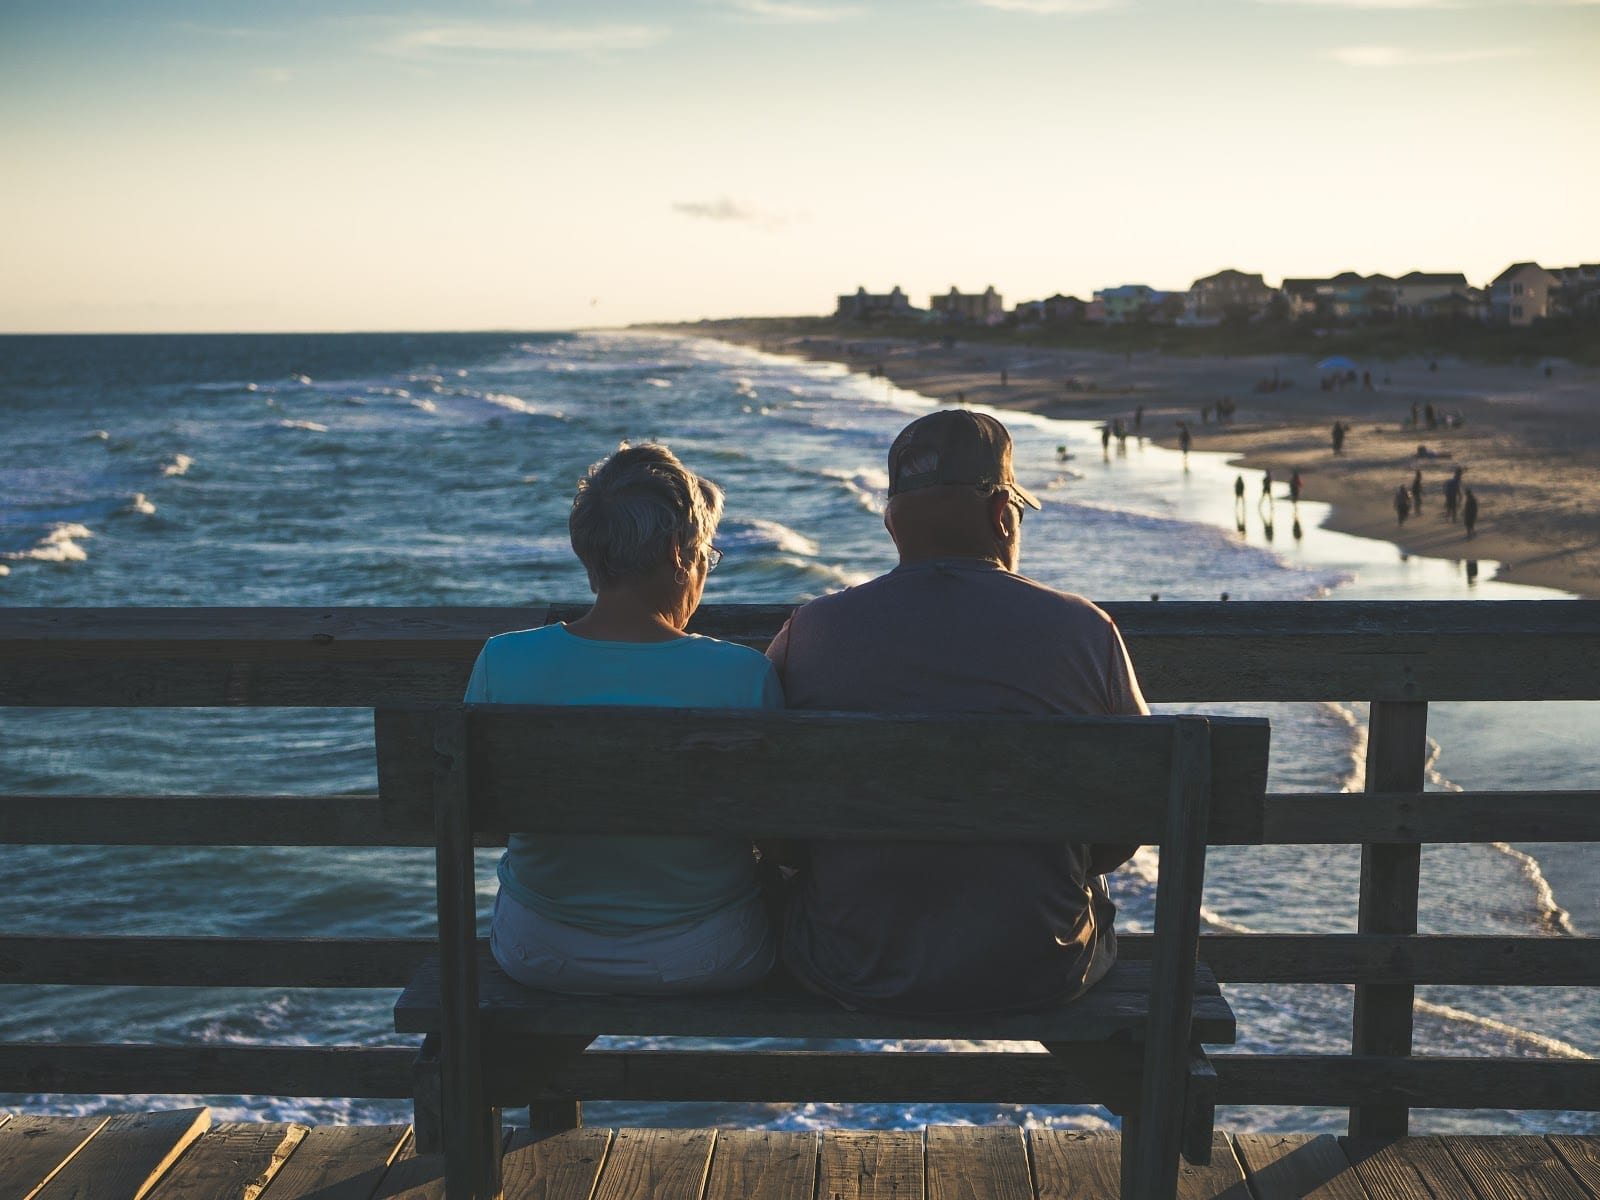 Couple in Retirement Enjoying a View of the Beach from a Pier